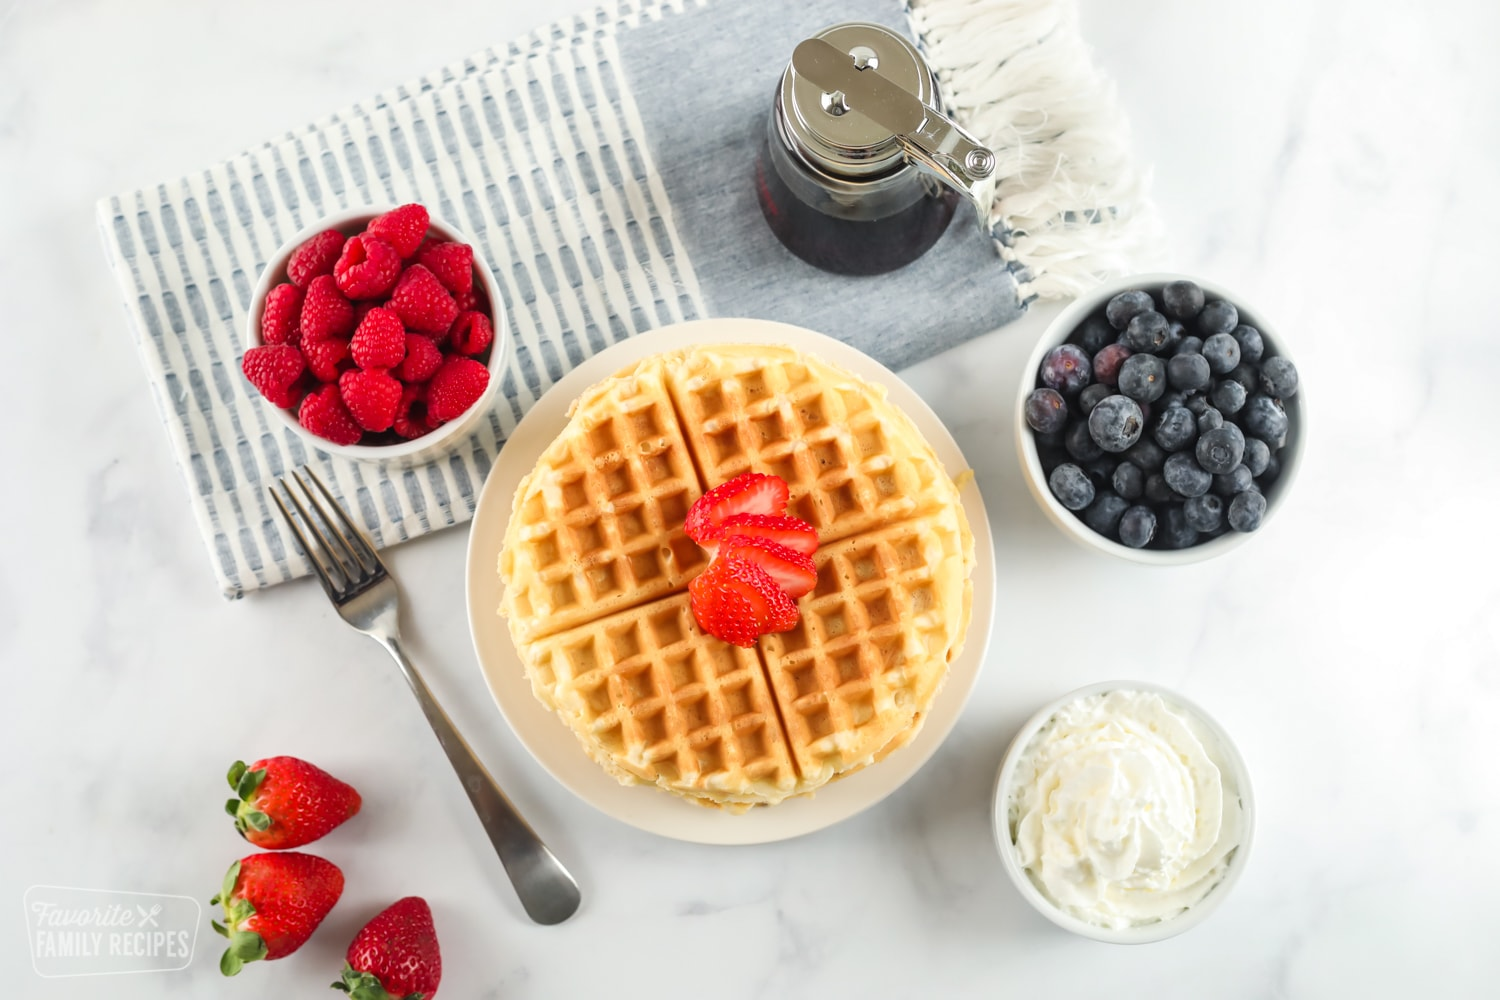 Easy-to-make waffles with breakfast setting